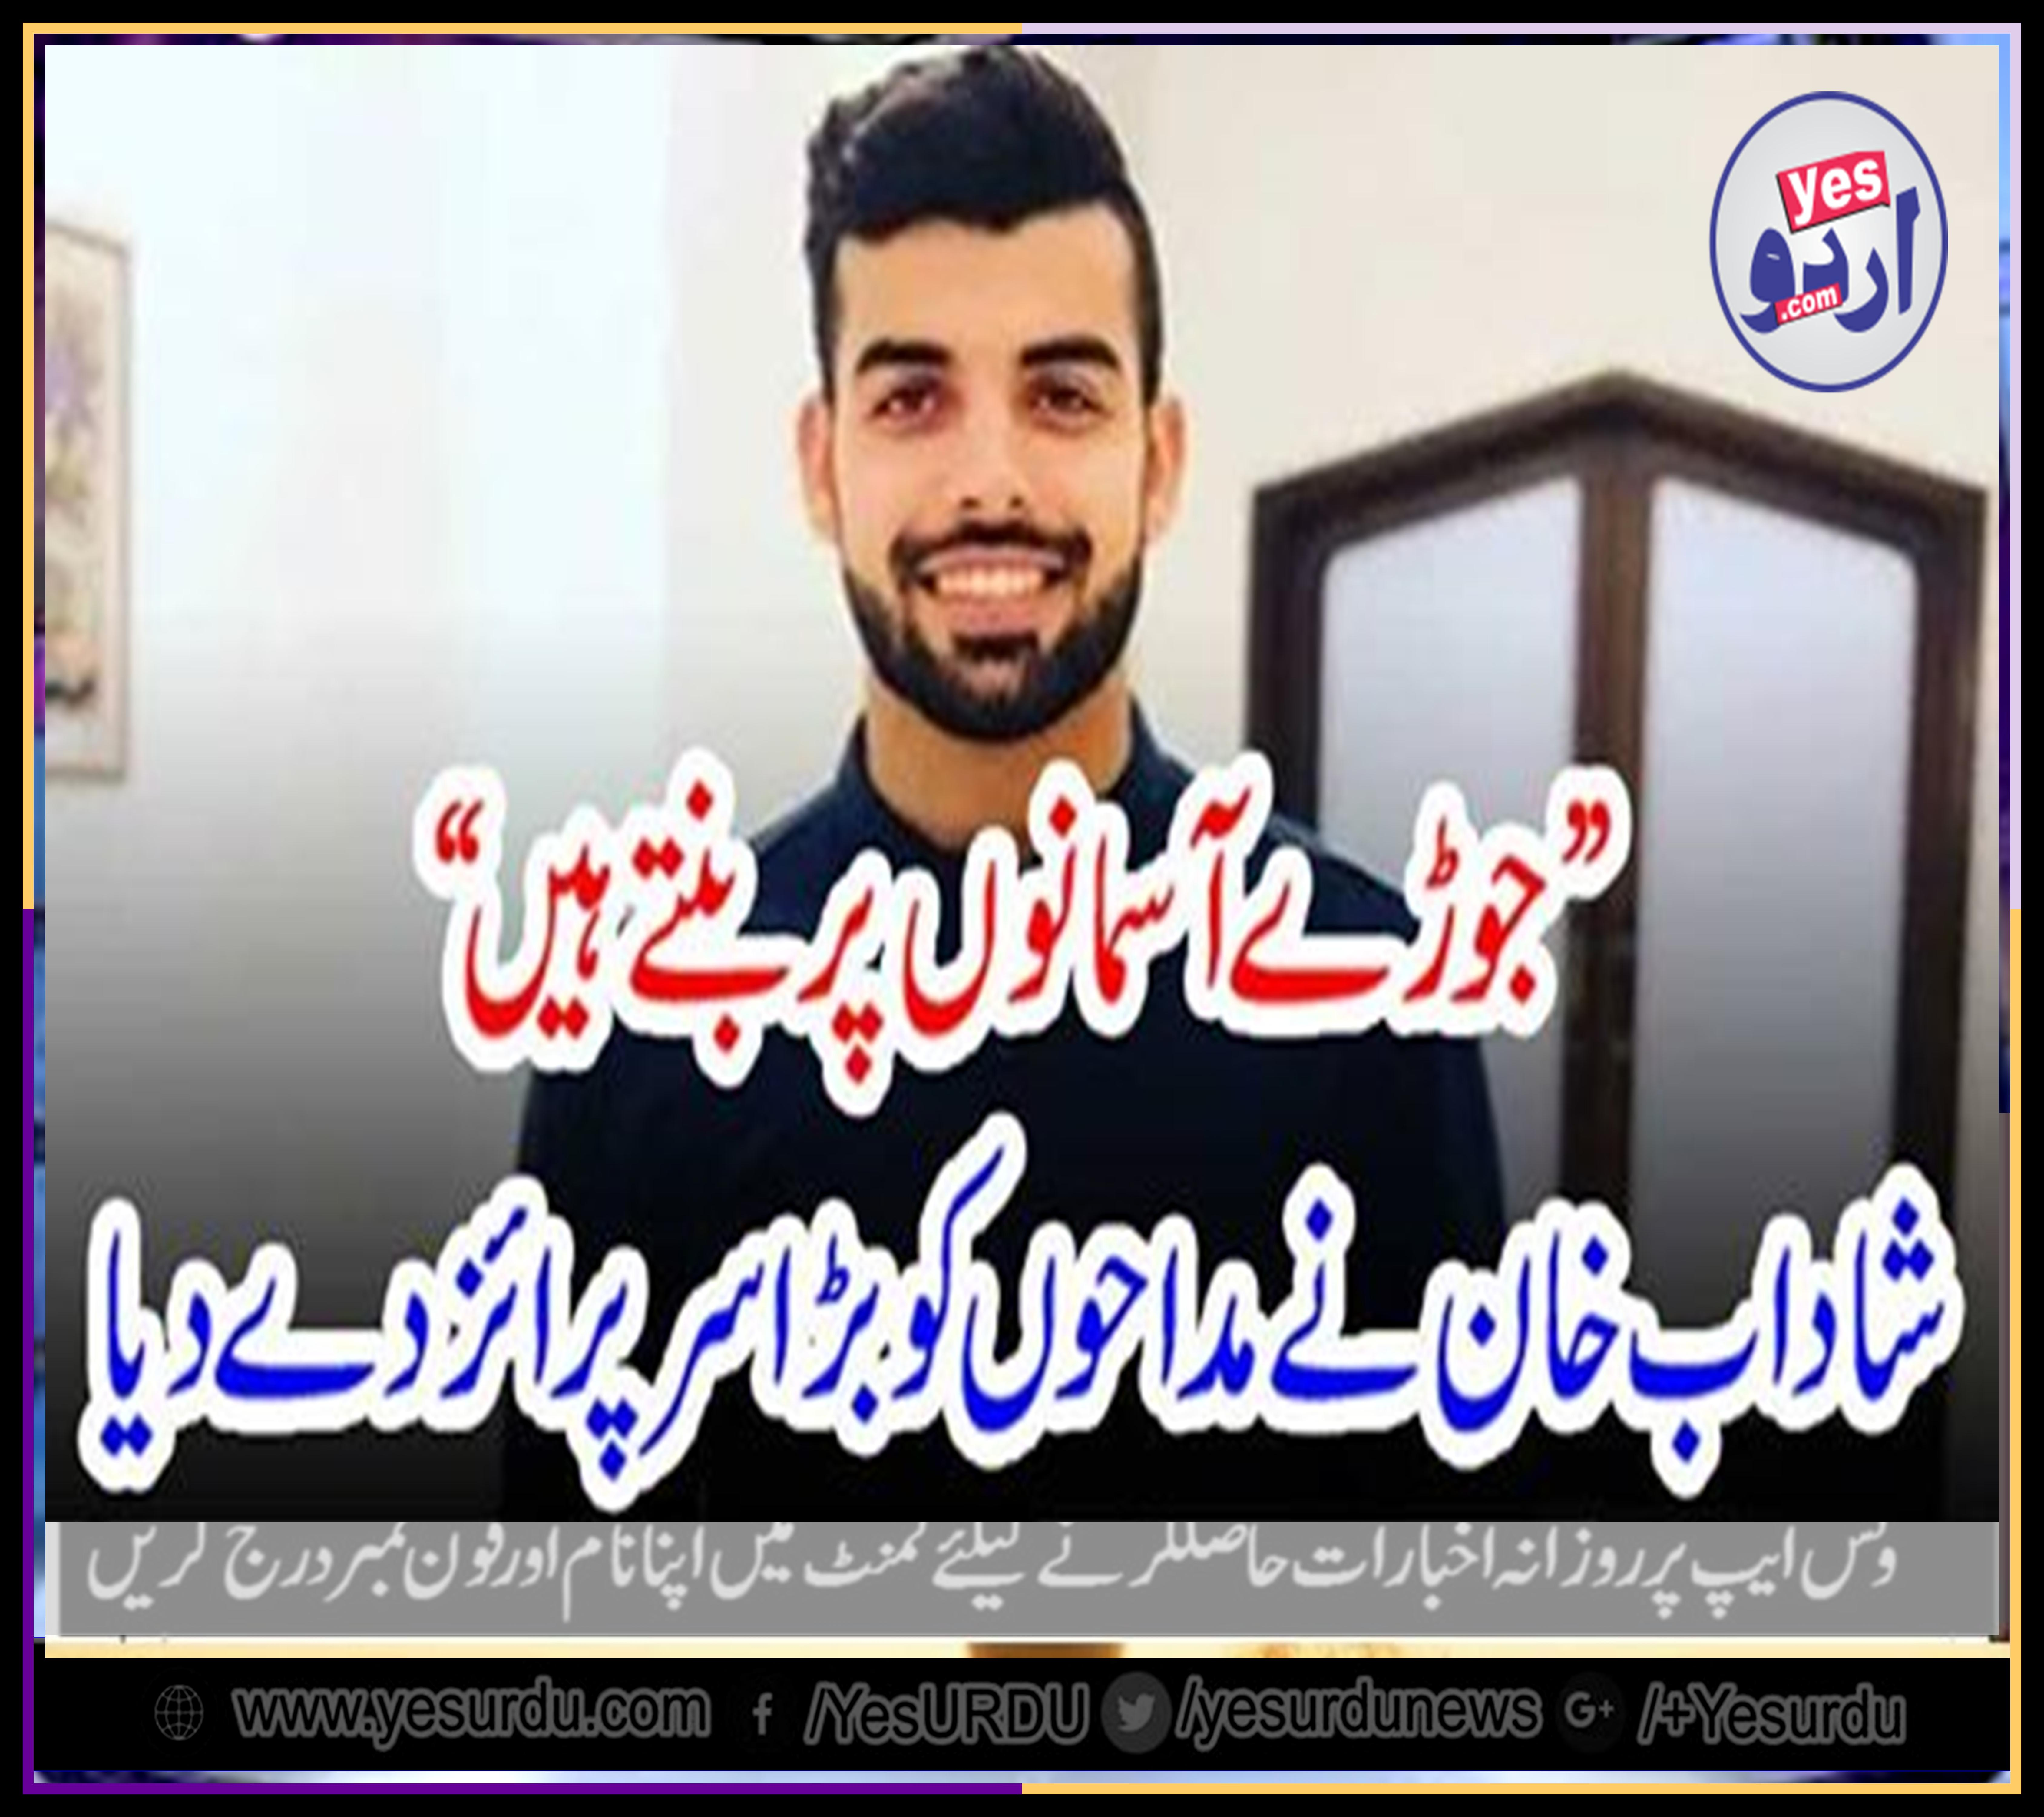 MEN, WOMNEN, PAIRS, DECIDED, IN, HEAVEN, BUT, MET, ON, EARTH, SHADAB KHAN, SPIN BOWLER